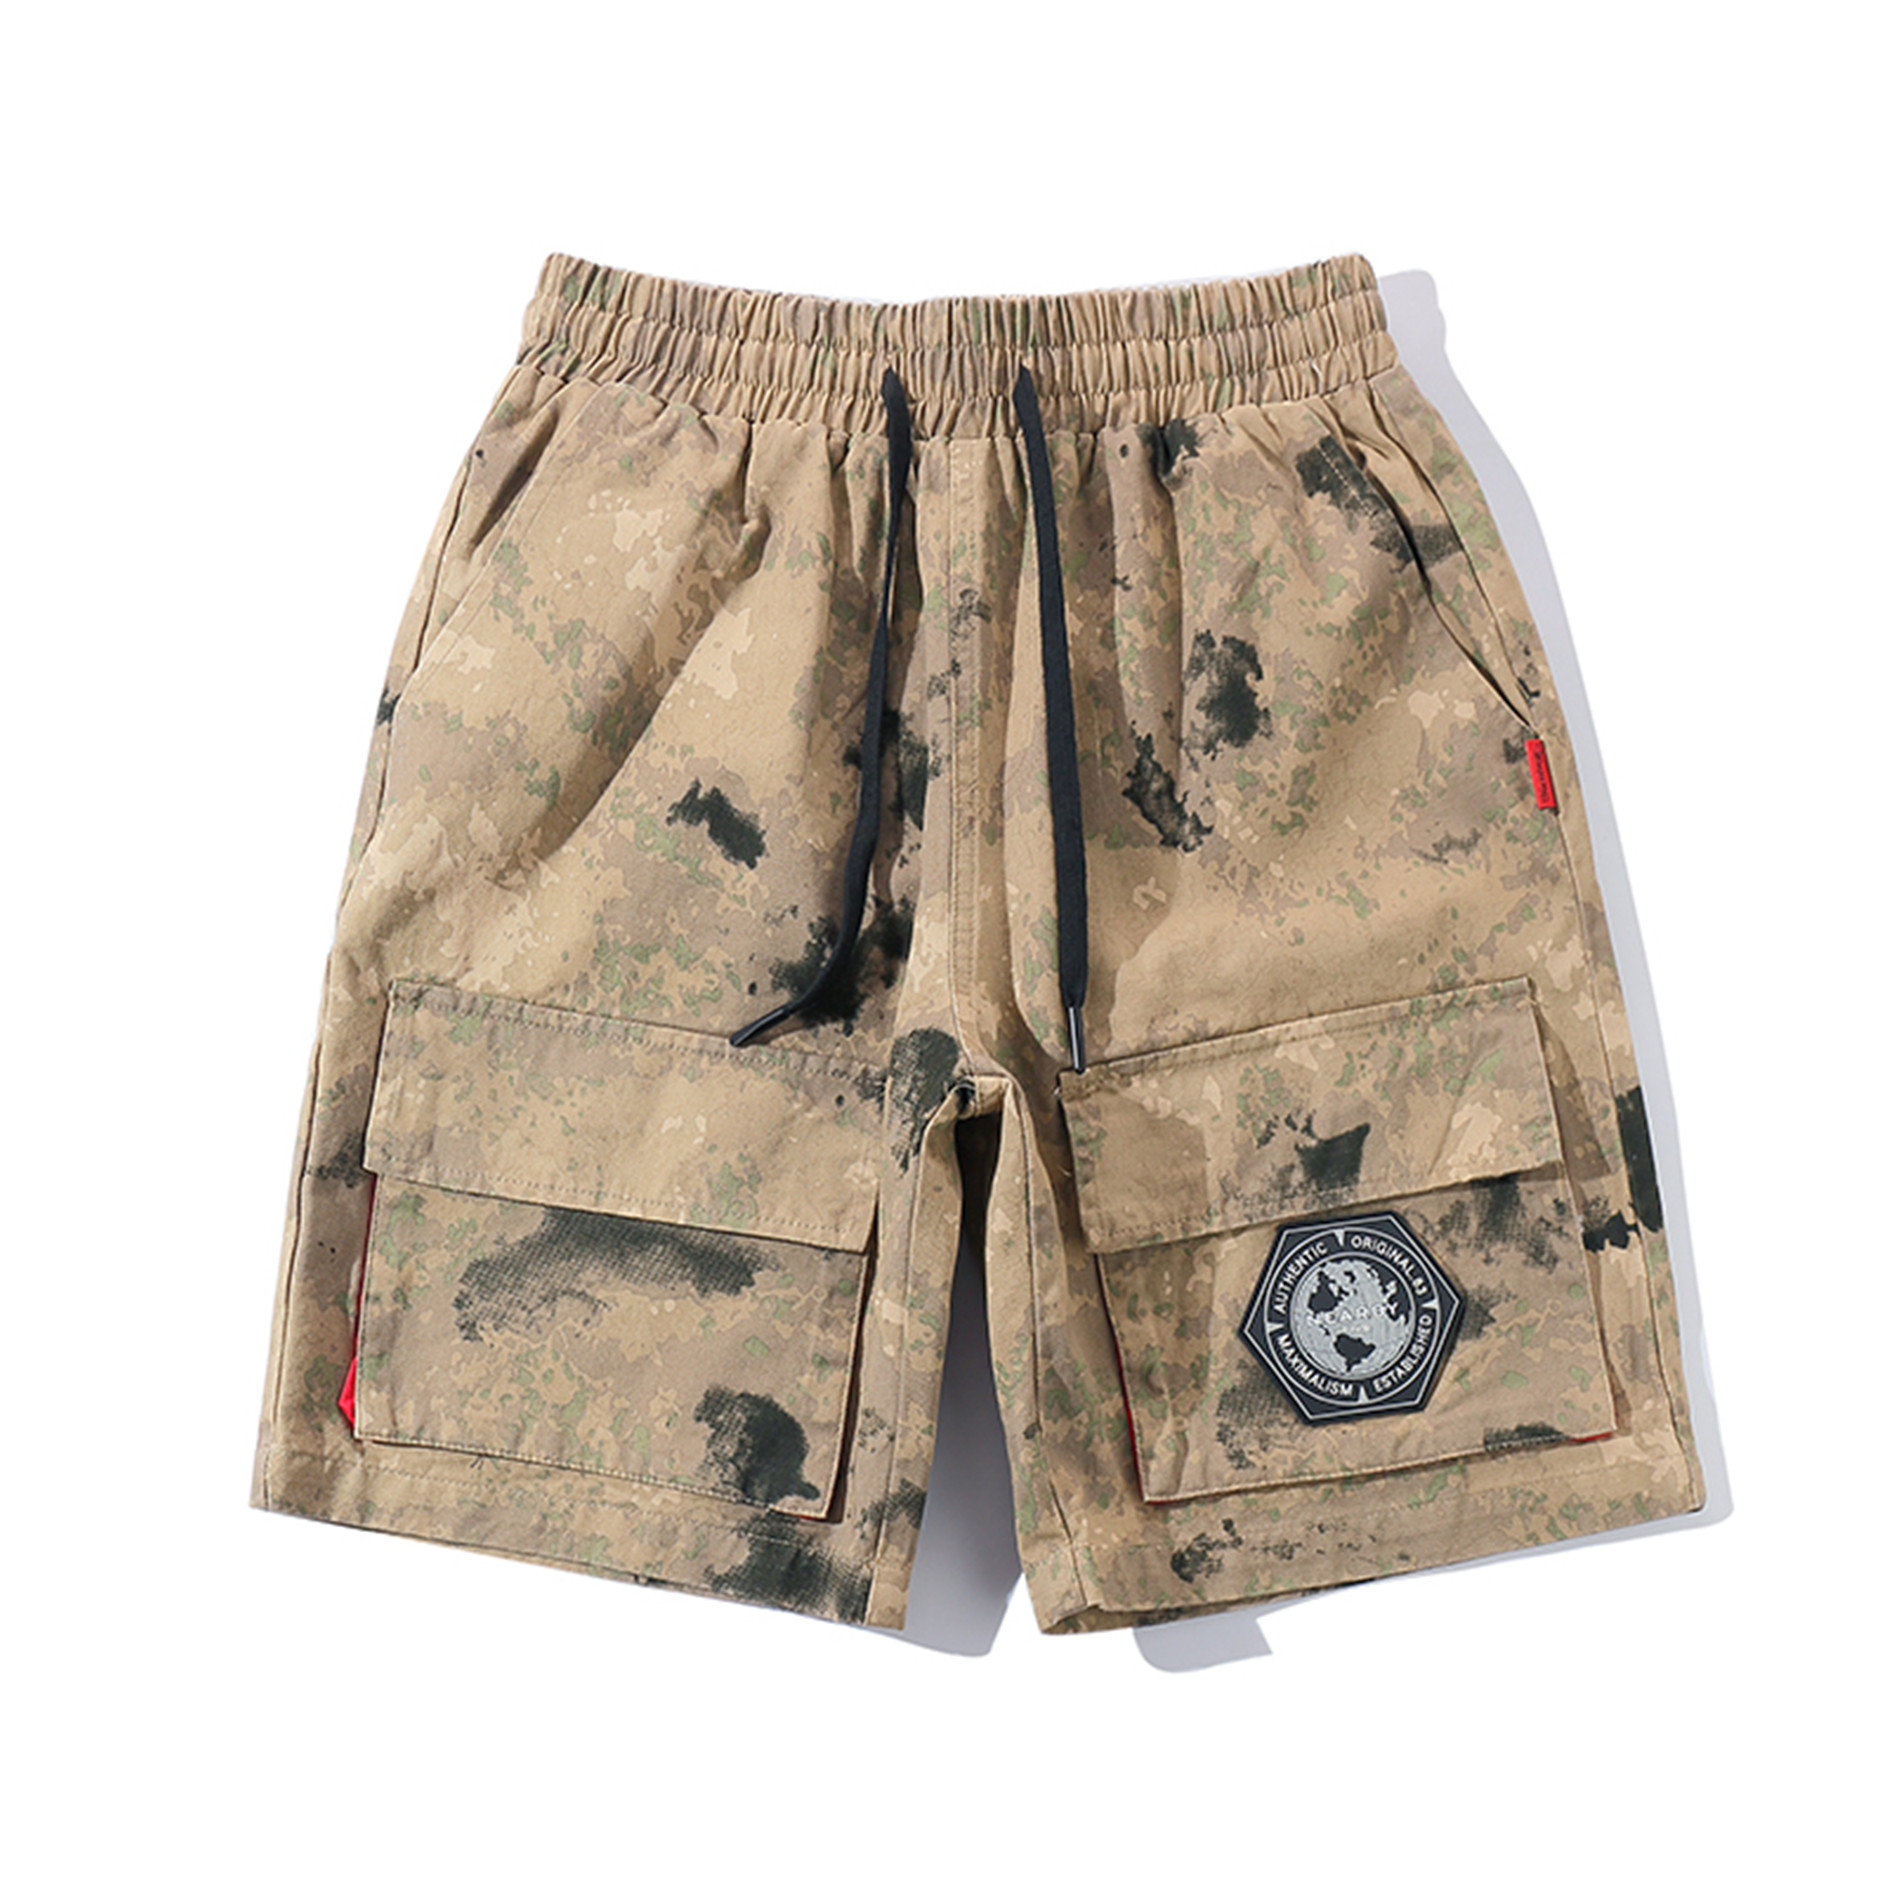 Summer Casual Men Shorts Streetwear Vintage Cargo Shorts Jogger Camouflage With Pockets Fashion Kleding Vanquish Fitness XX60MS